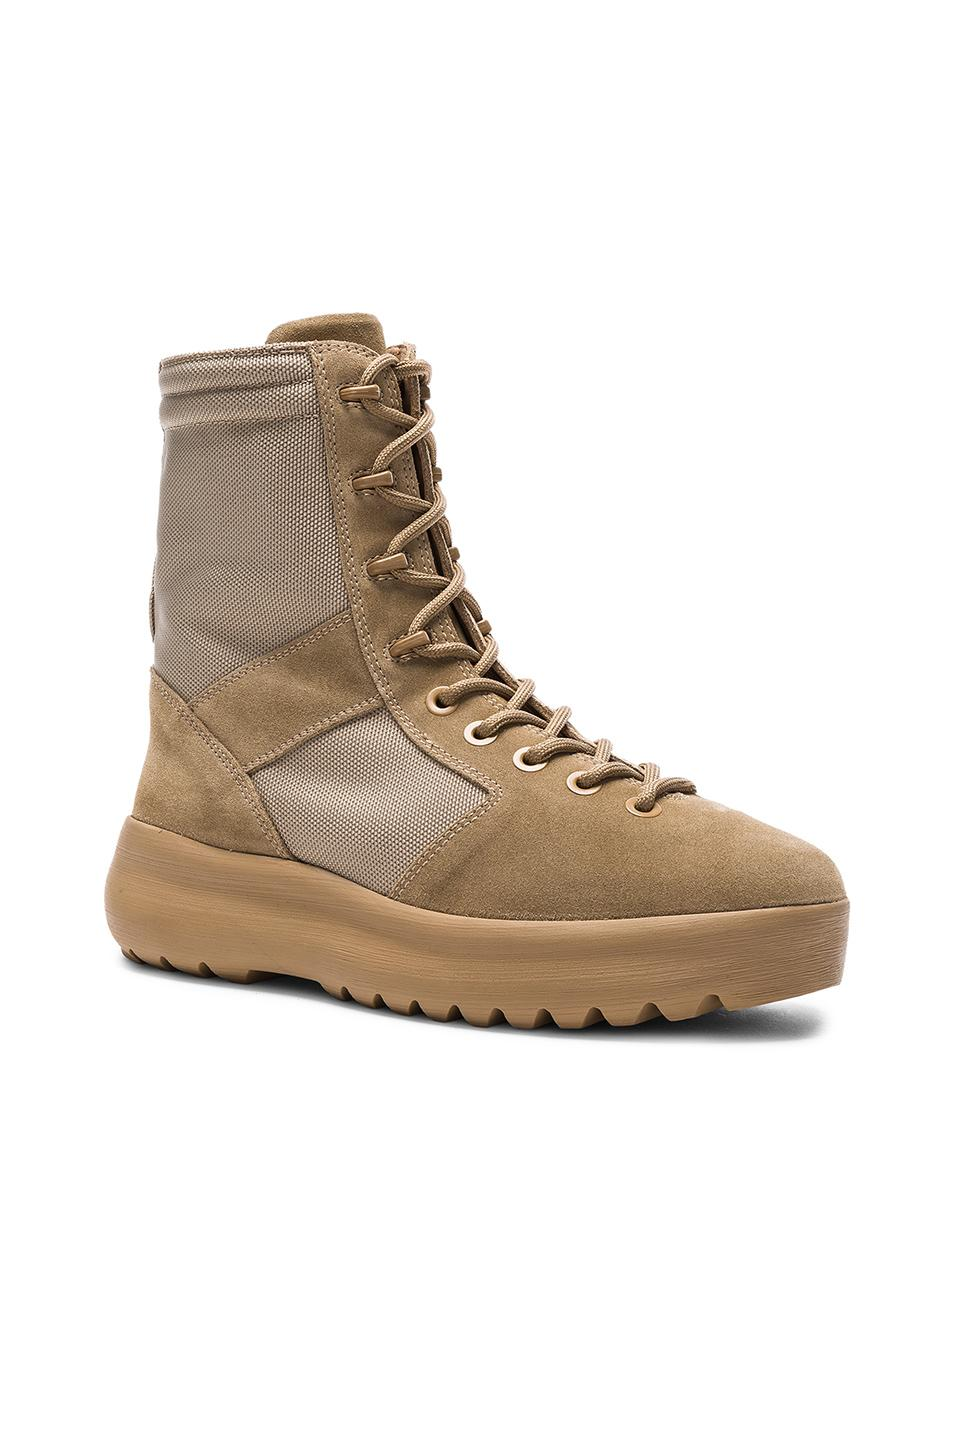 Awesome Yeezy 950 W Boots - Shoes - WYEEZ20586 | The RealReal